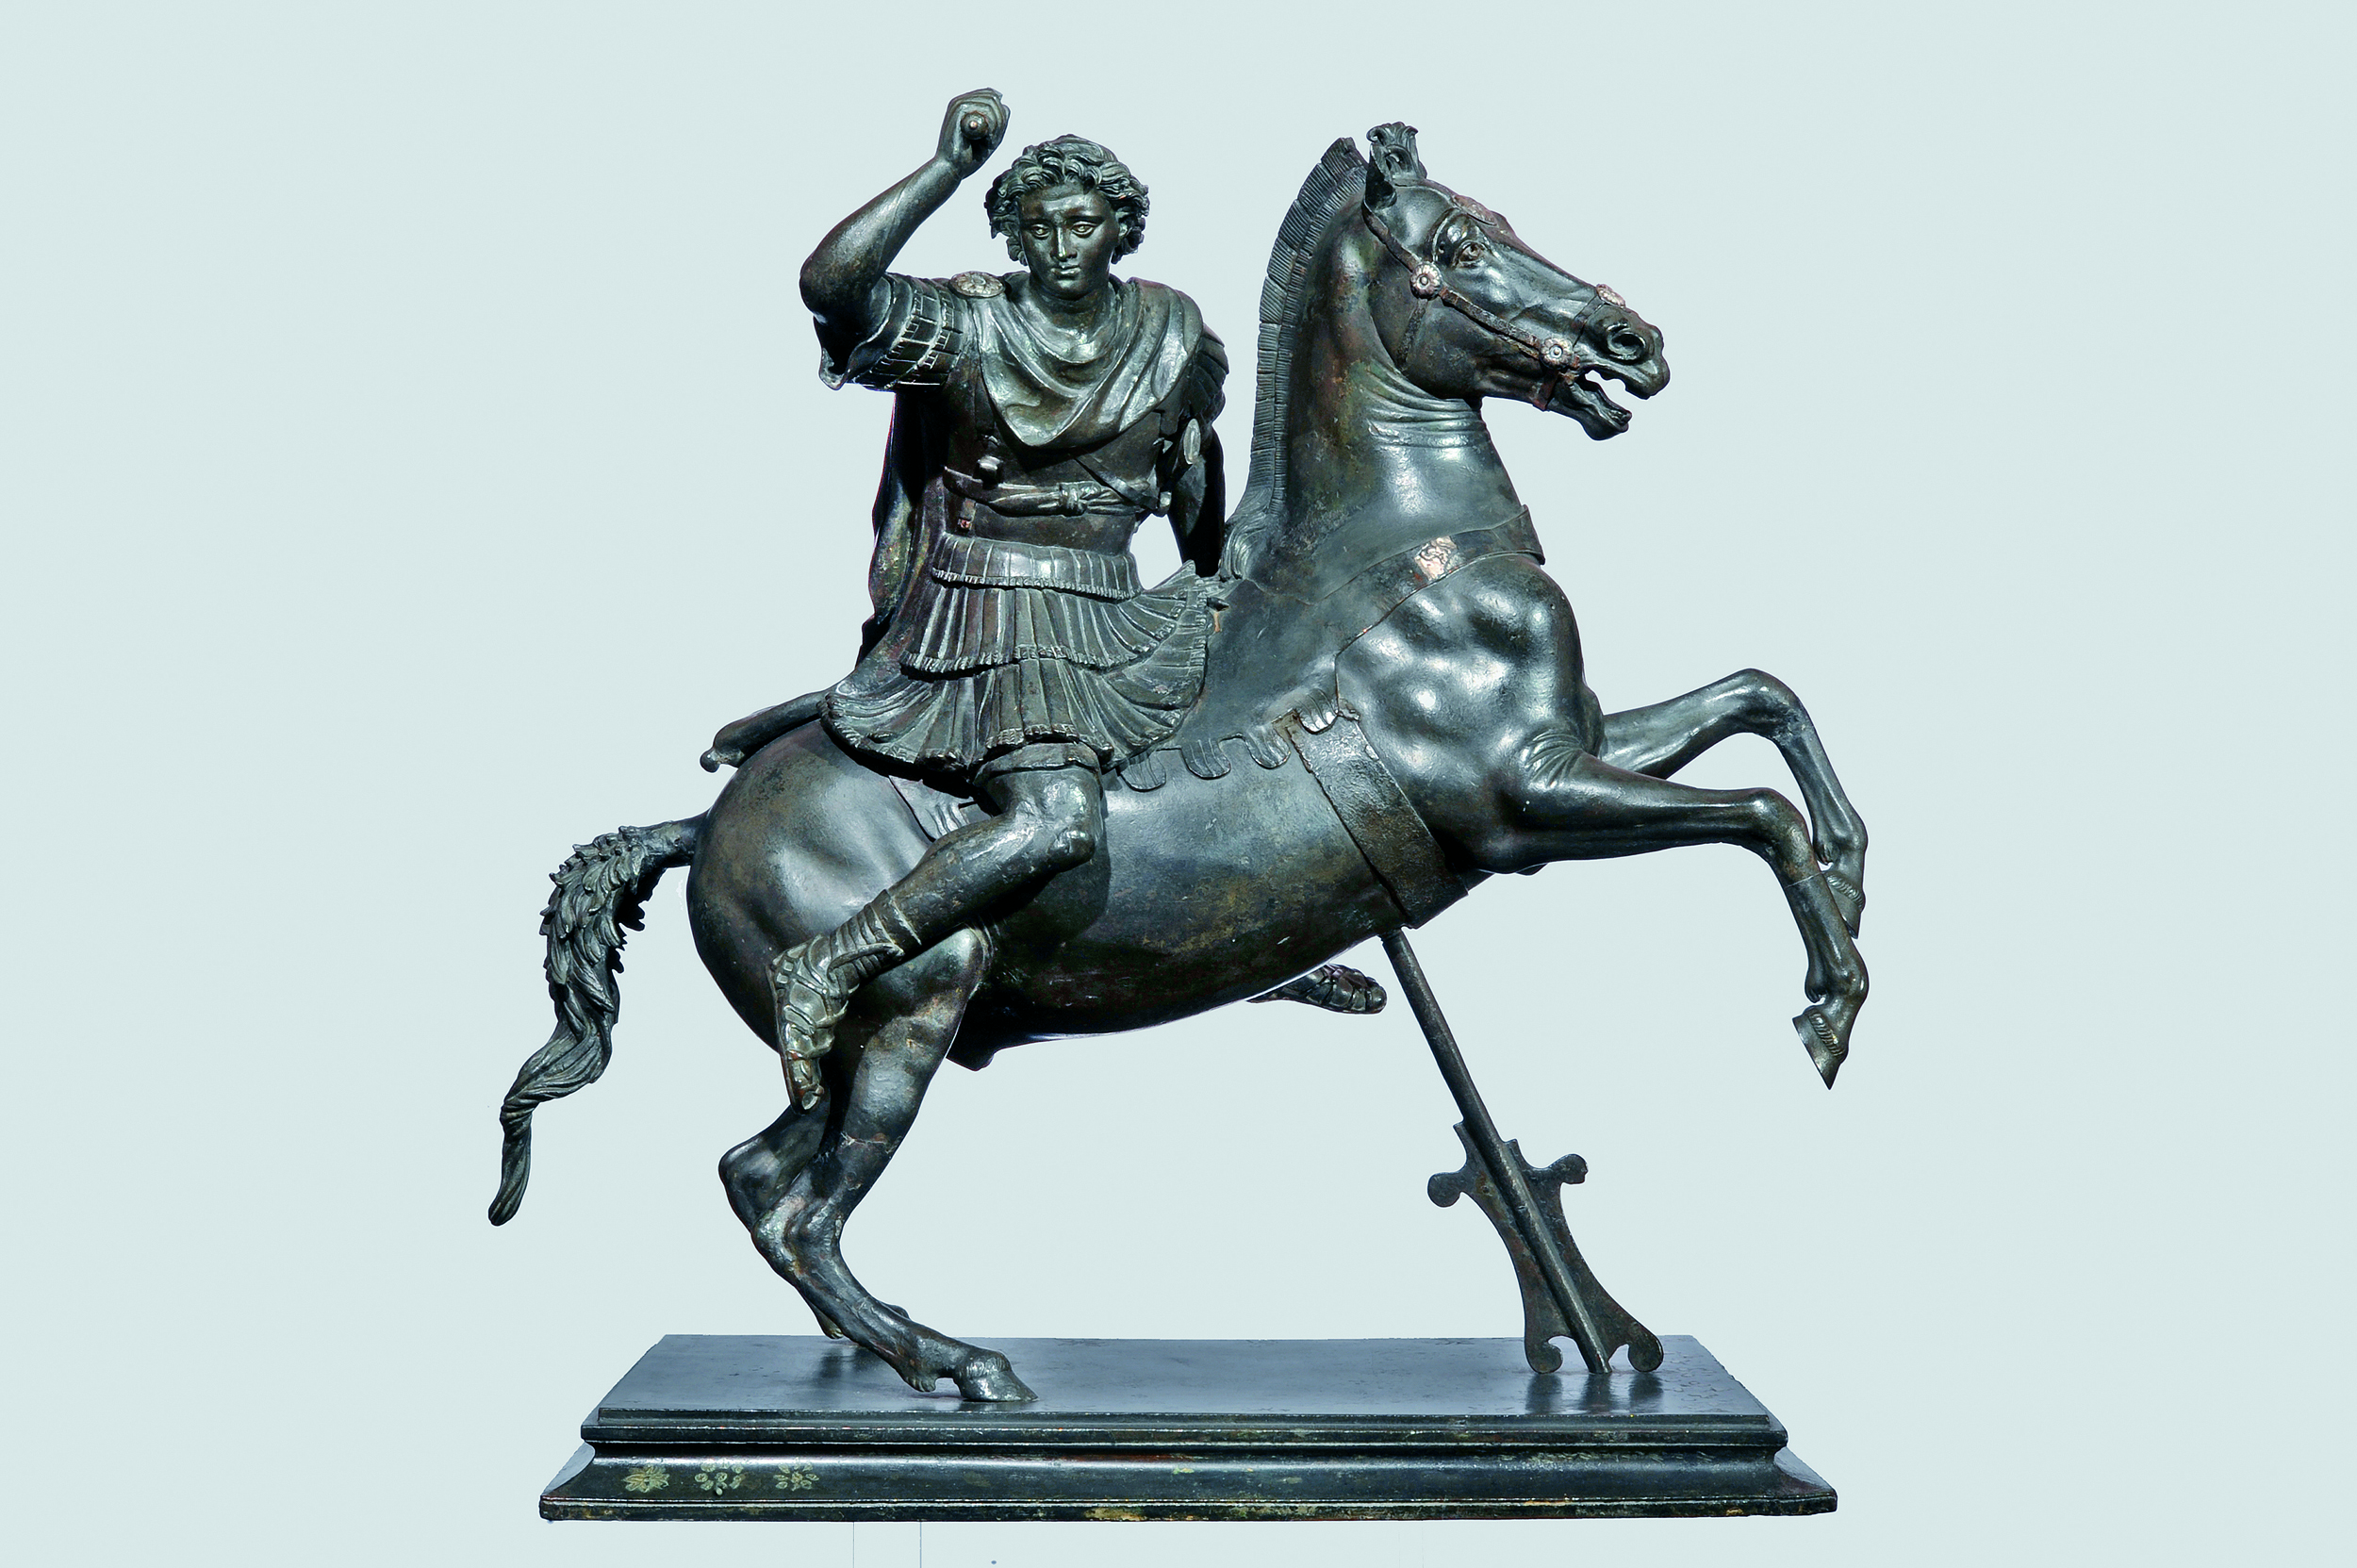 Statuette of Alexander the Great on Horseback First century BCE, bronze, with silver inlays, 49 x 47 x 29 cm, Naples, Museo Archeologico Nazionale